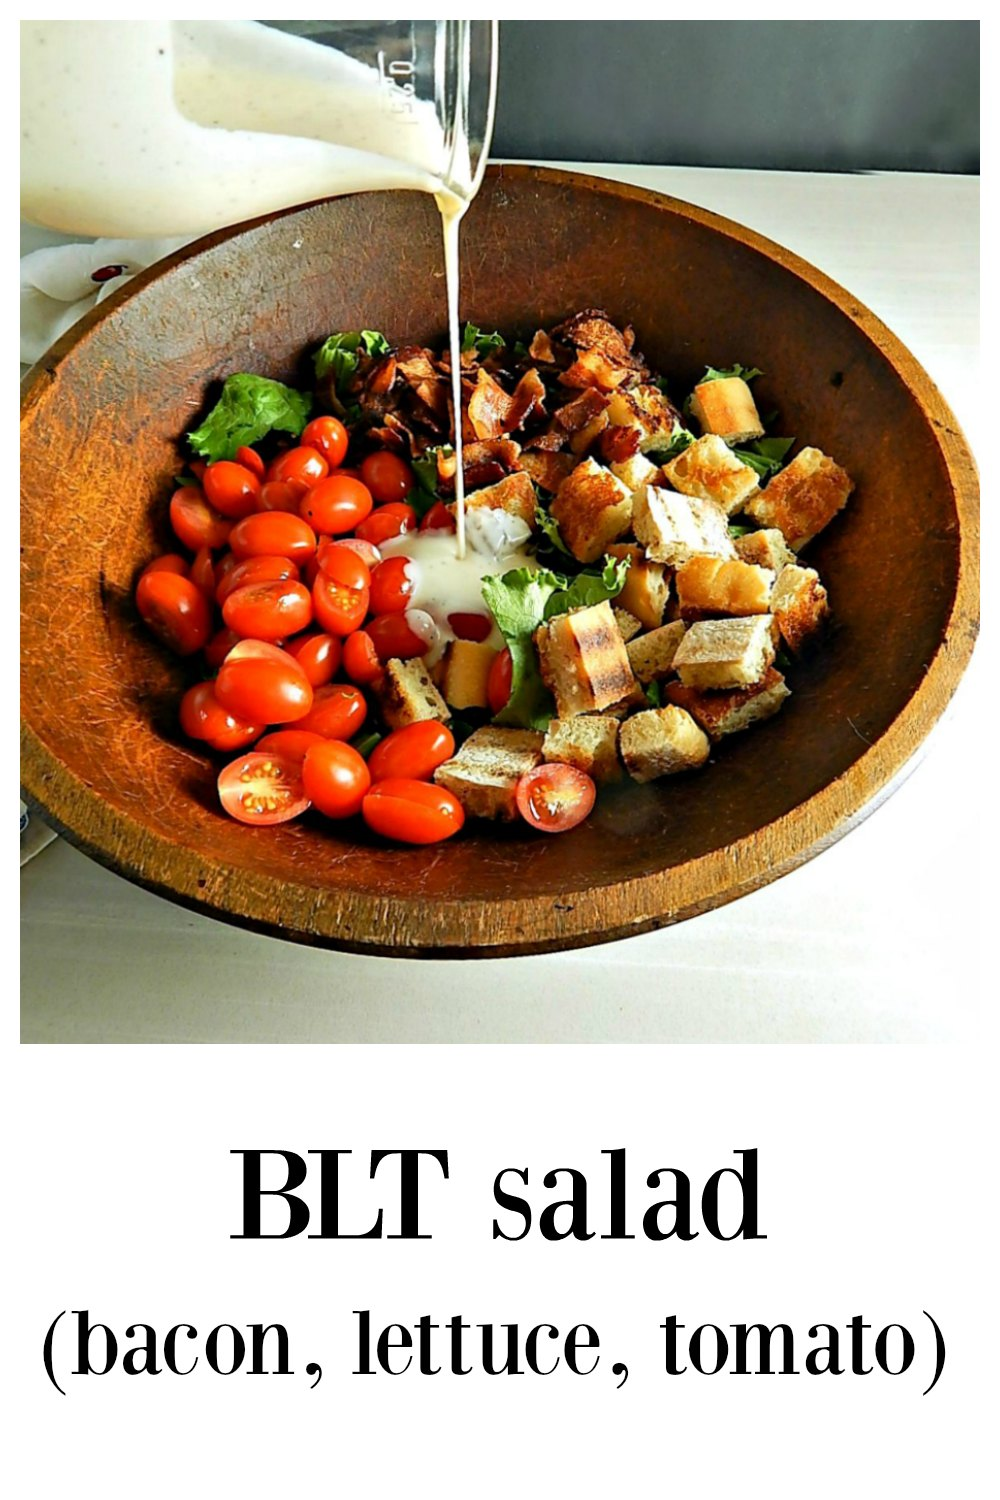 Bacon Lettuce Tomato Salad is everything cool, creamy, chewy, crunchy sweet and tangy deliciousness! So refreshing and just the thing for summer tomatoes! #BLTSalad #BaconLettuceTomatoSalad